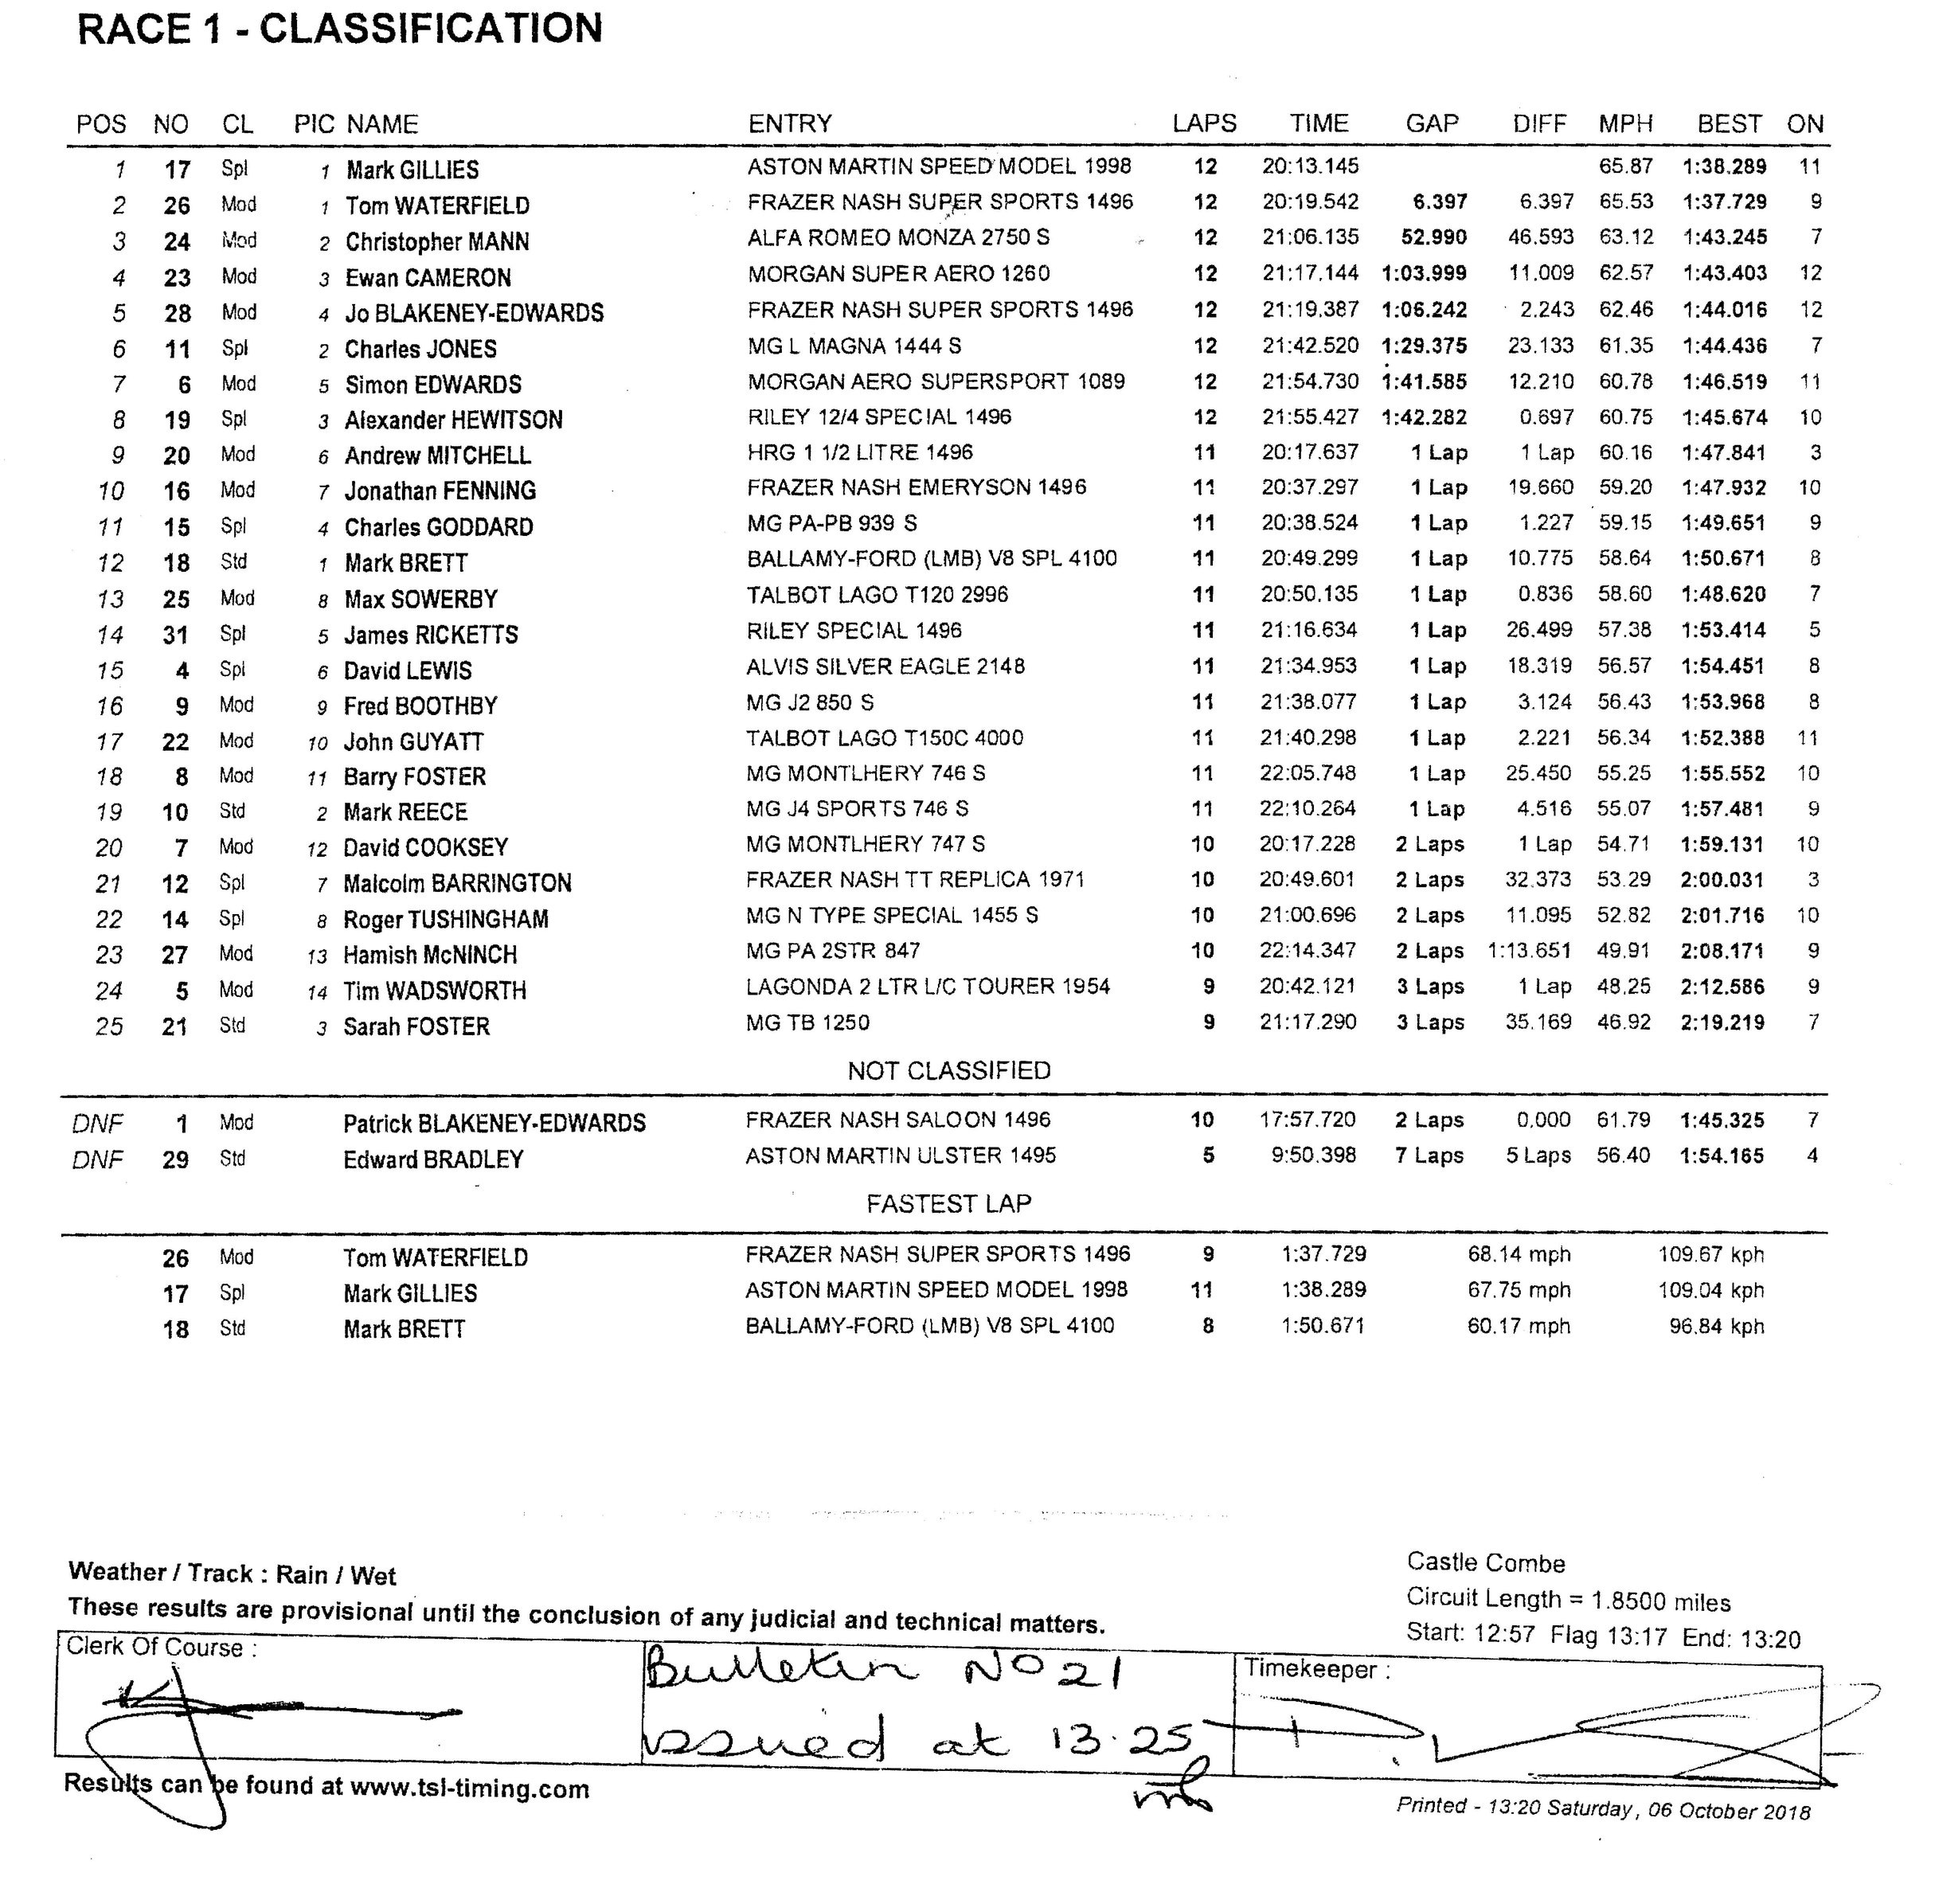 C+Combe+results.jpg